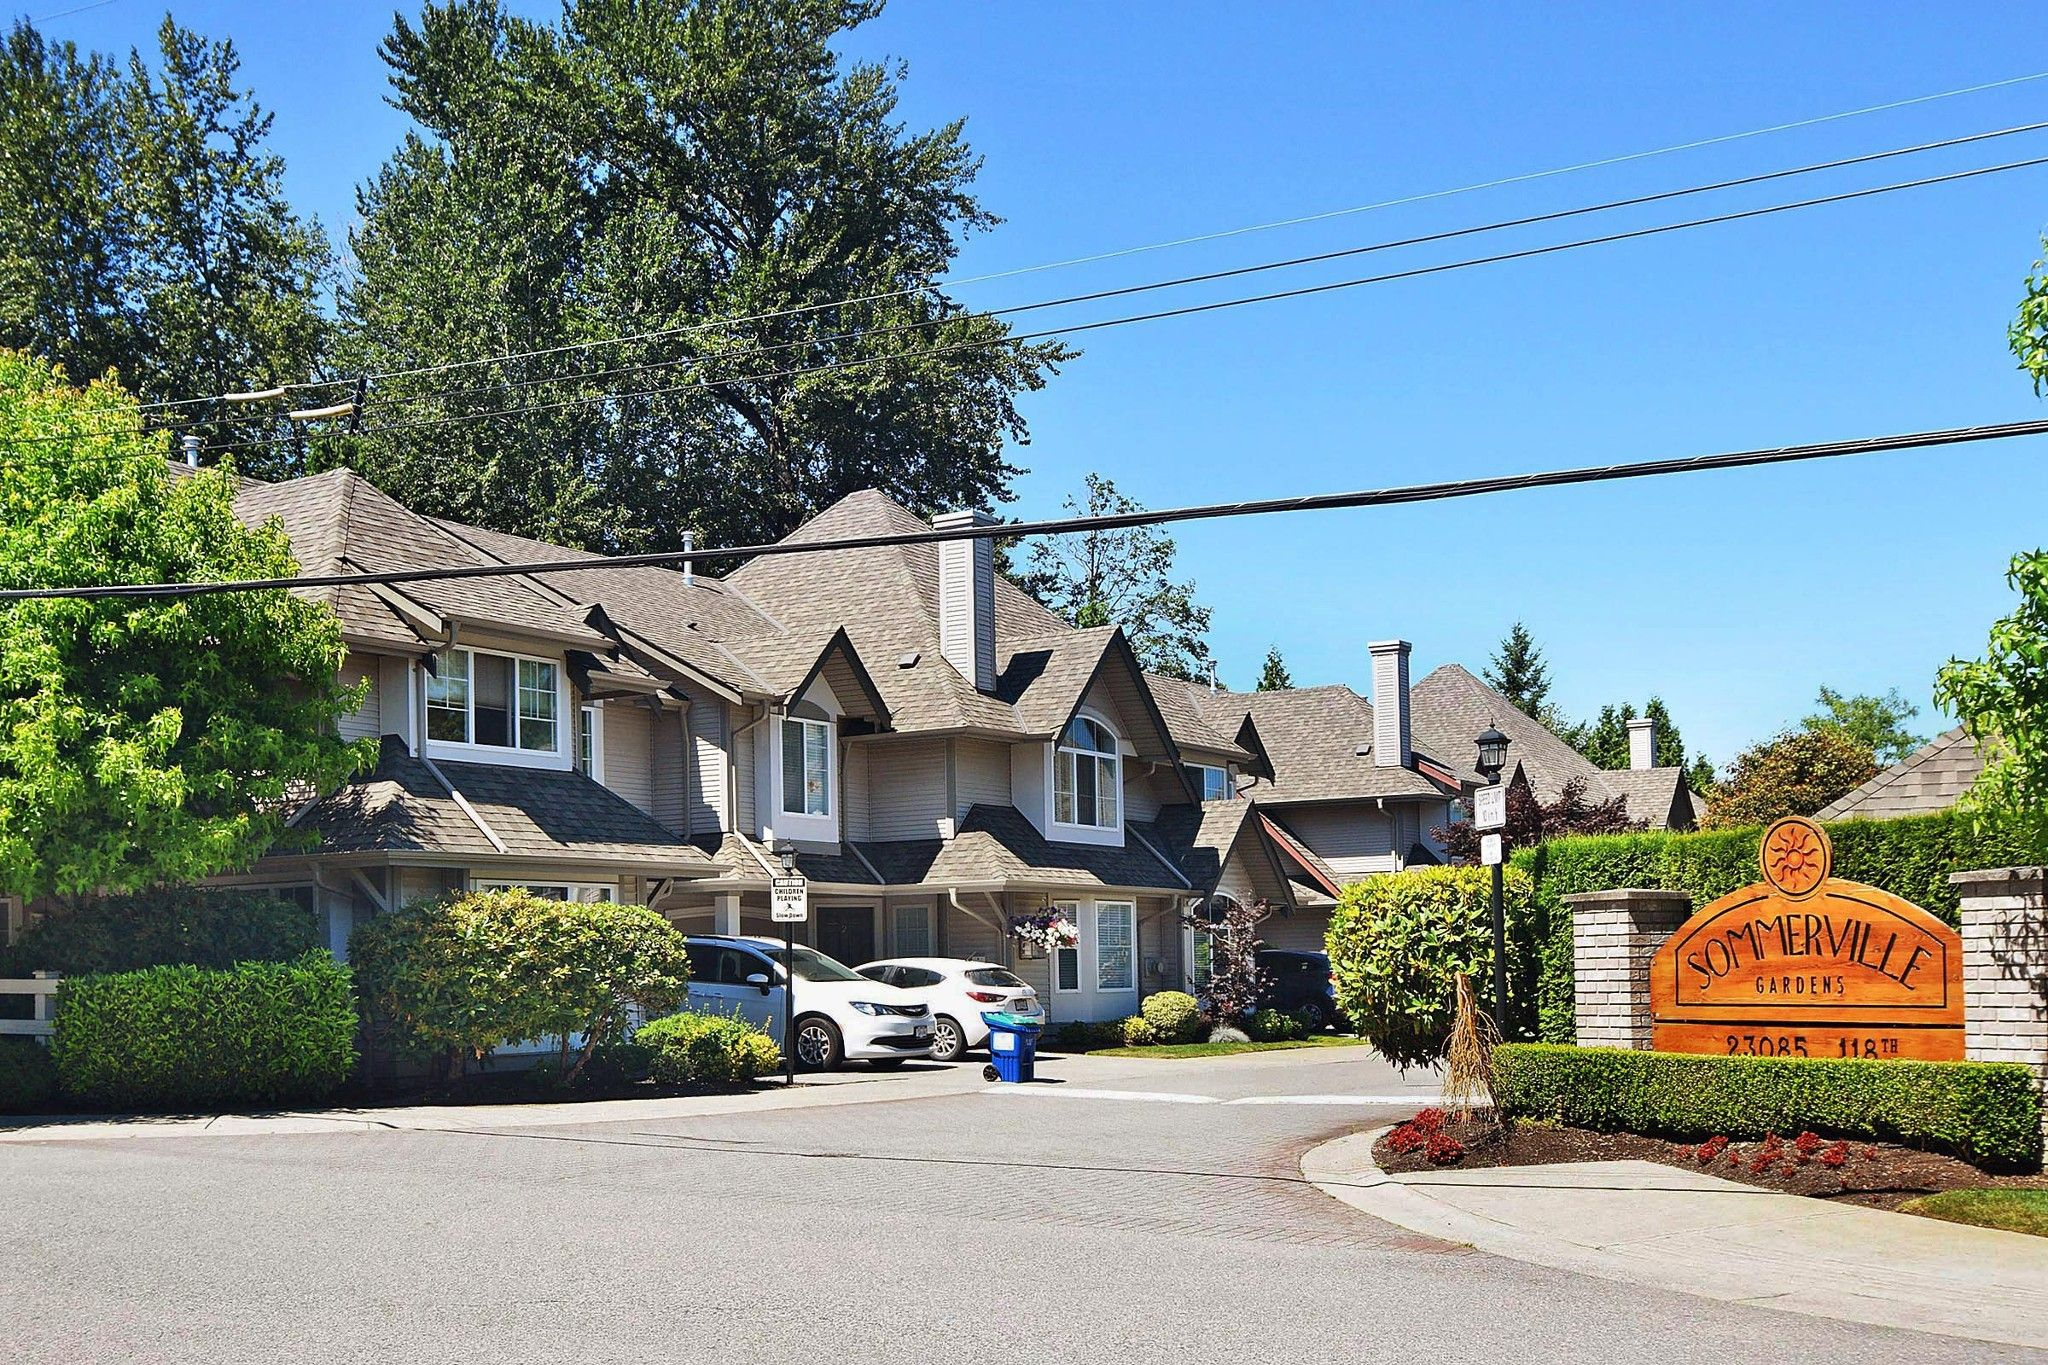 """Main Photo: 28 23085 118 Avenue in Maple Ridge: East Central Townhouse for sale in """"Sommerville"""" : MLS®# R2480989"""